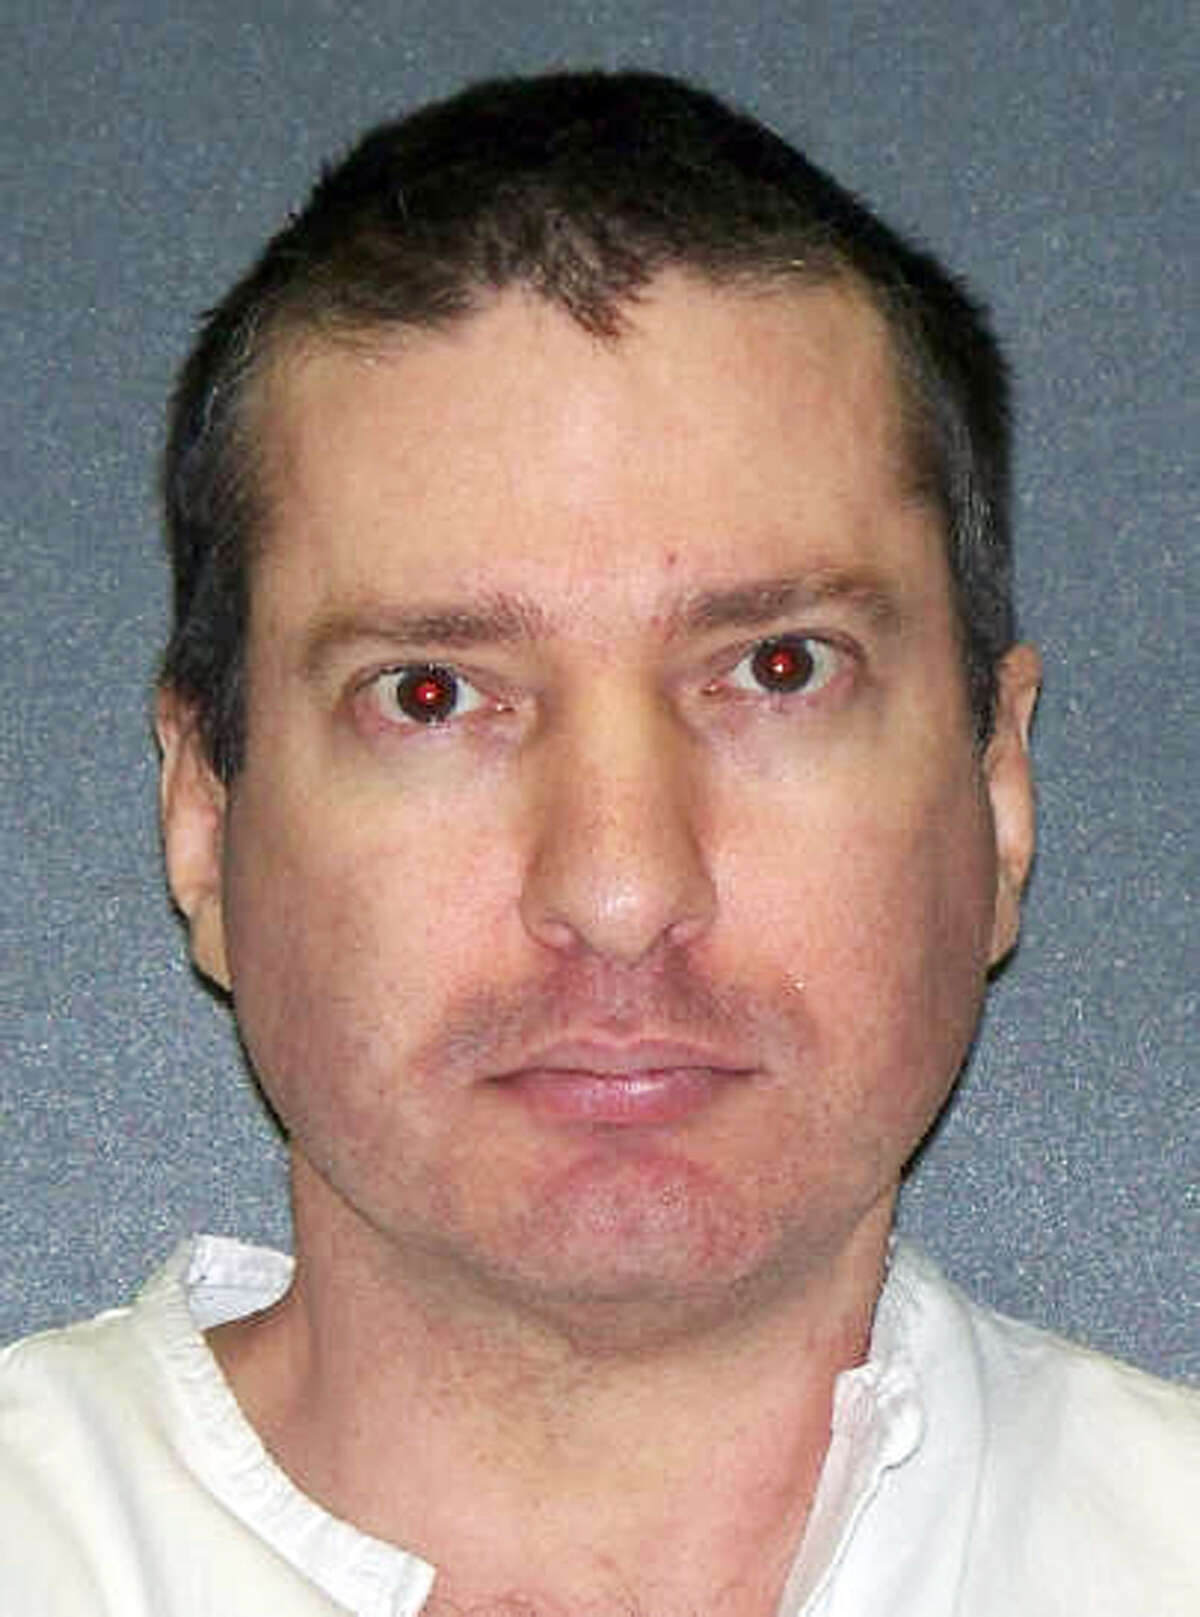 Lawrence Russell Brewer, executed Sept. 21, 2011 Crime: Capital murder for the dragging death of an African-American man in Jasper, Texas